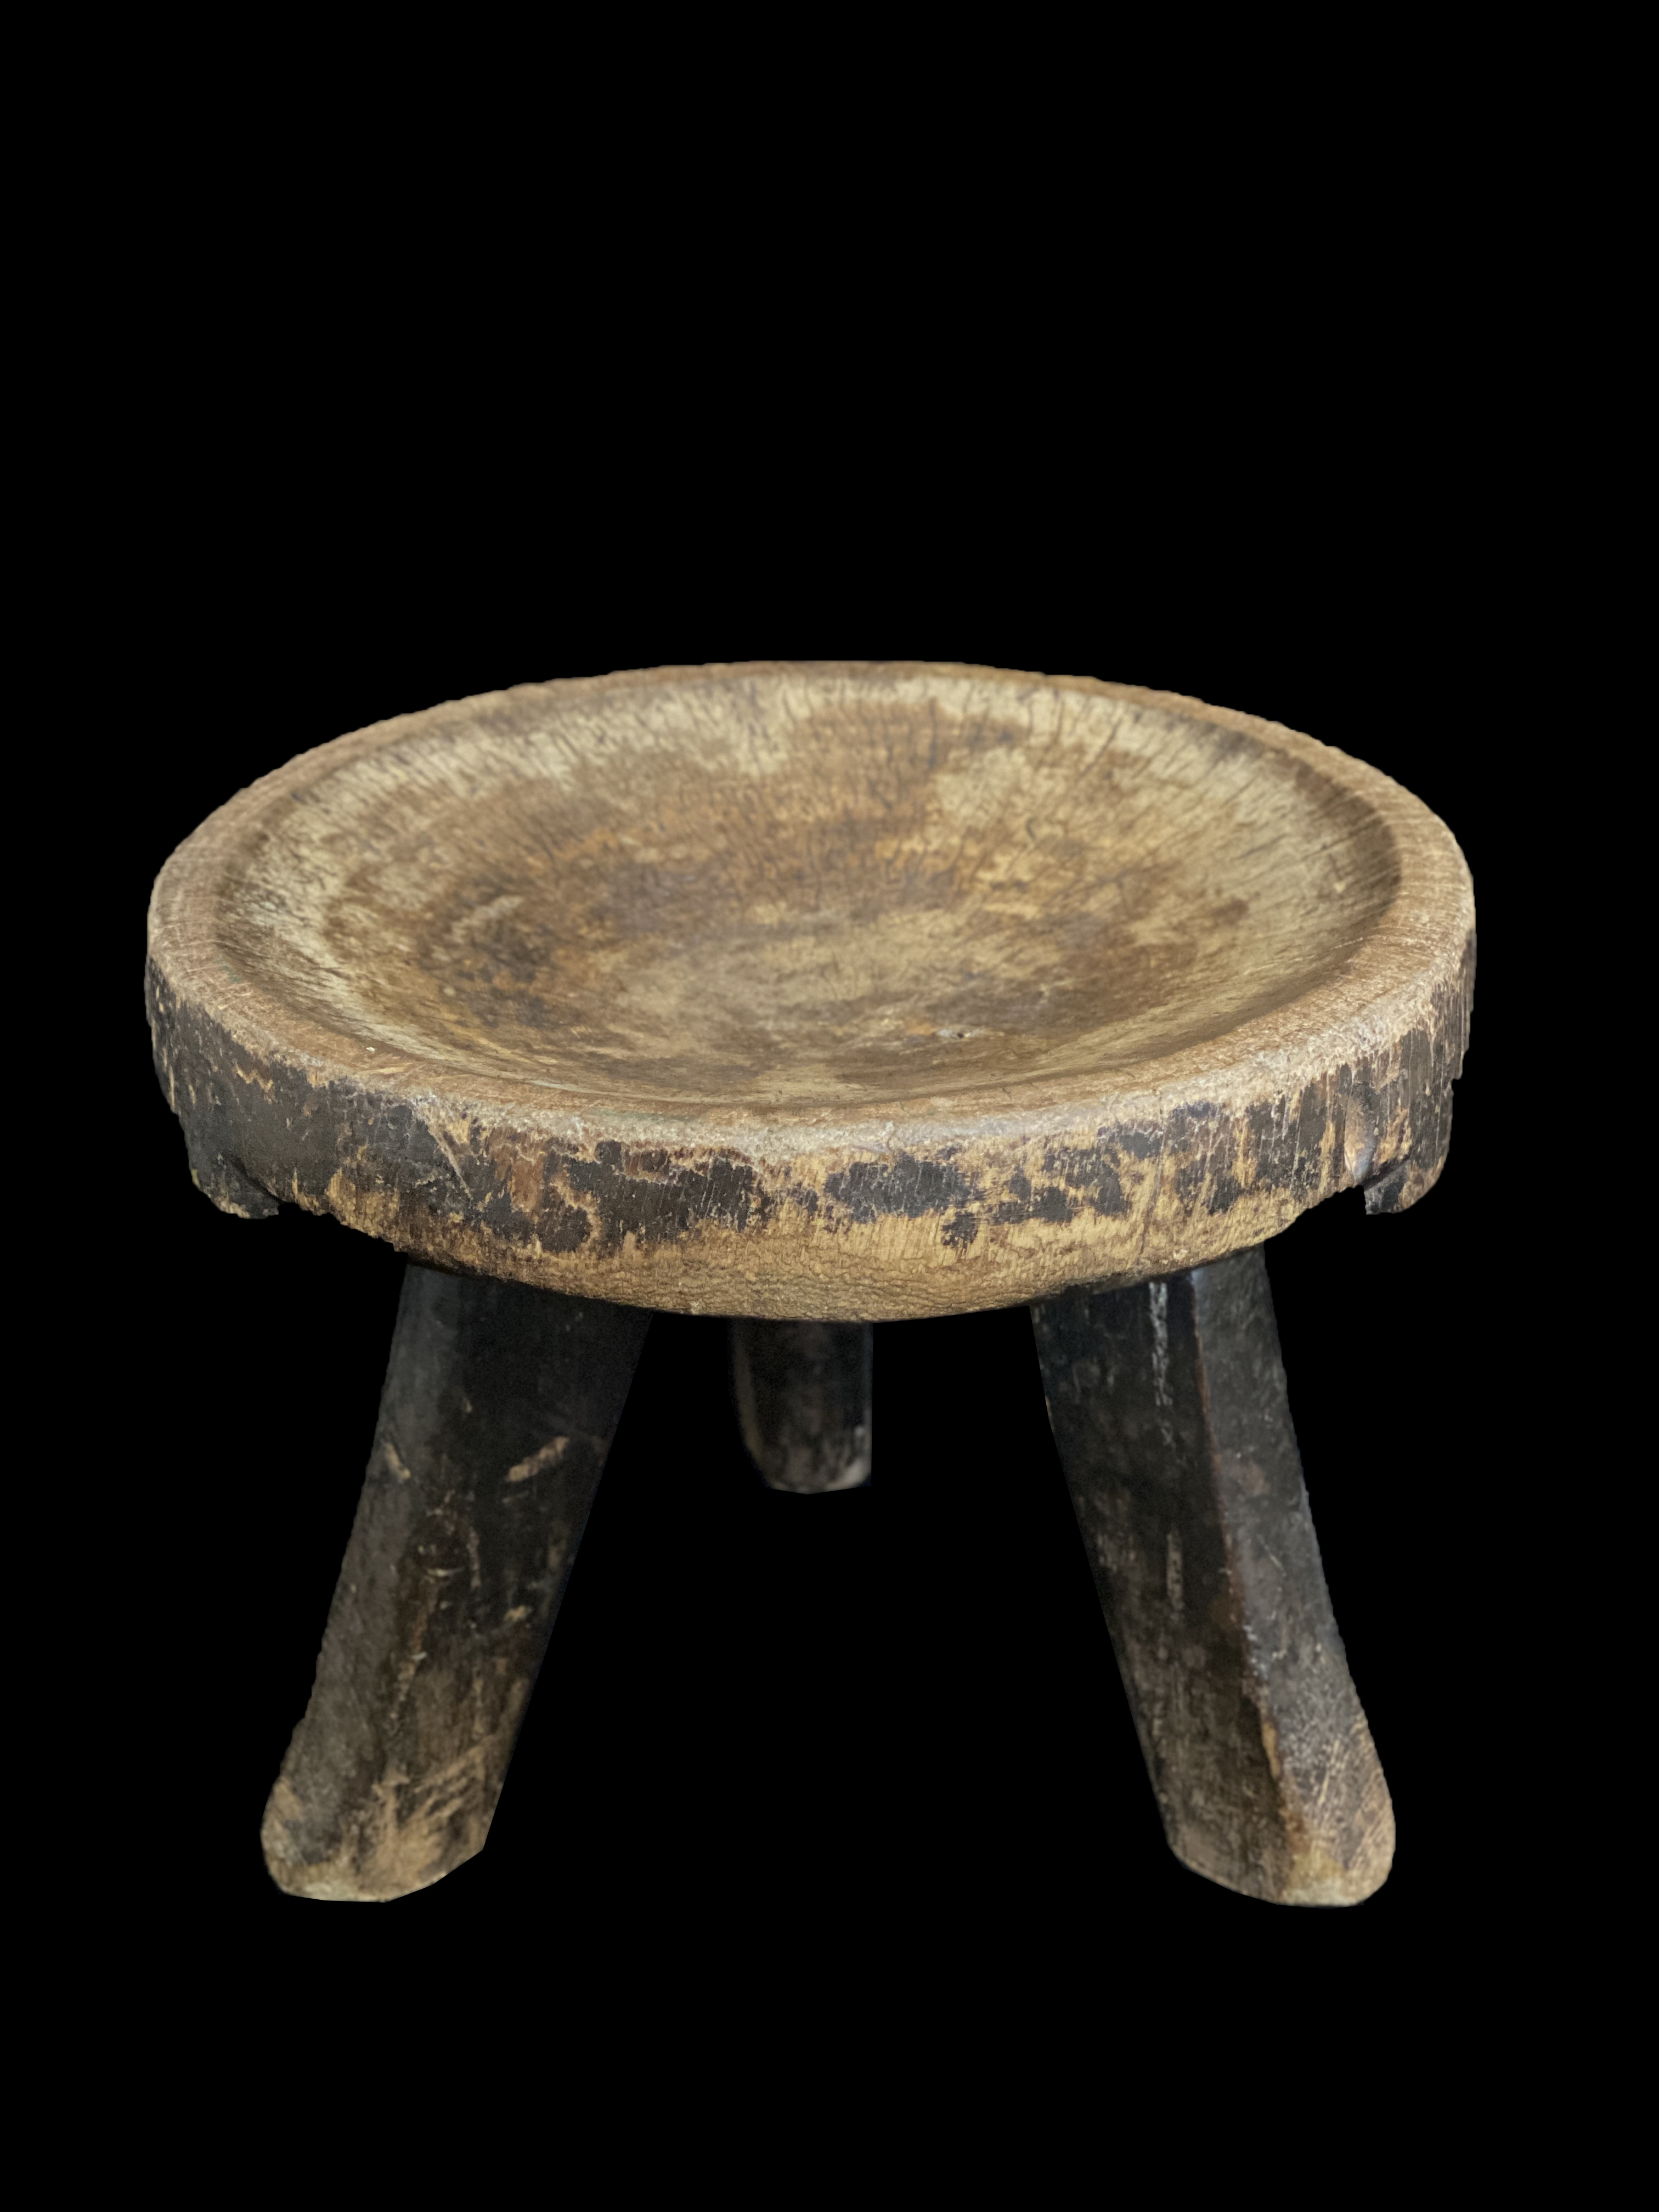 Wooden Stool - Gogo People, Tanzania, east Africa